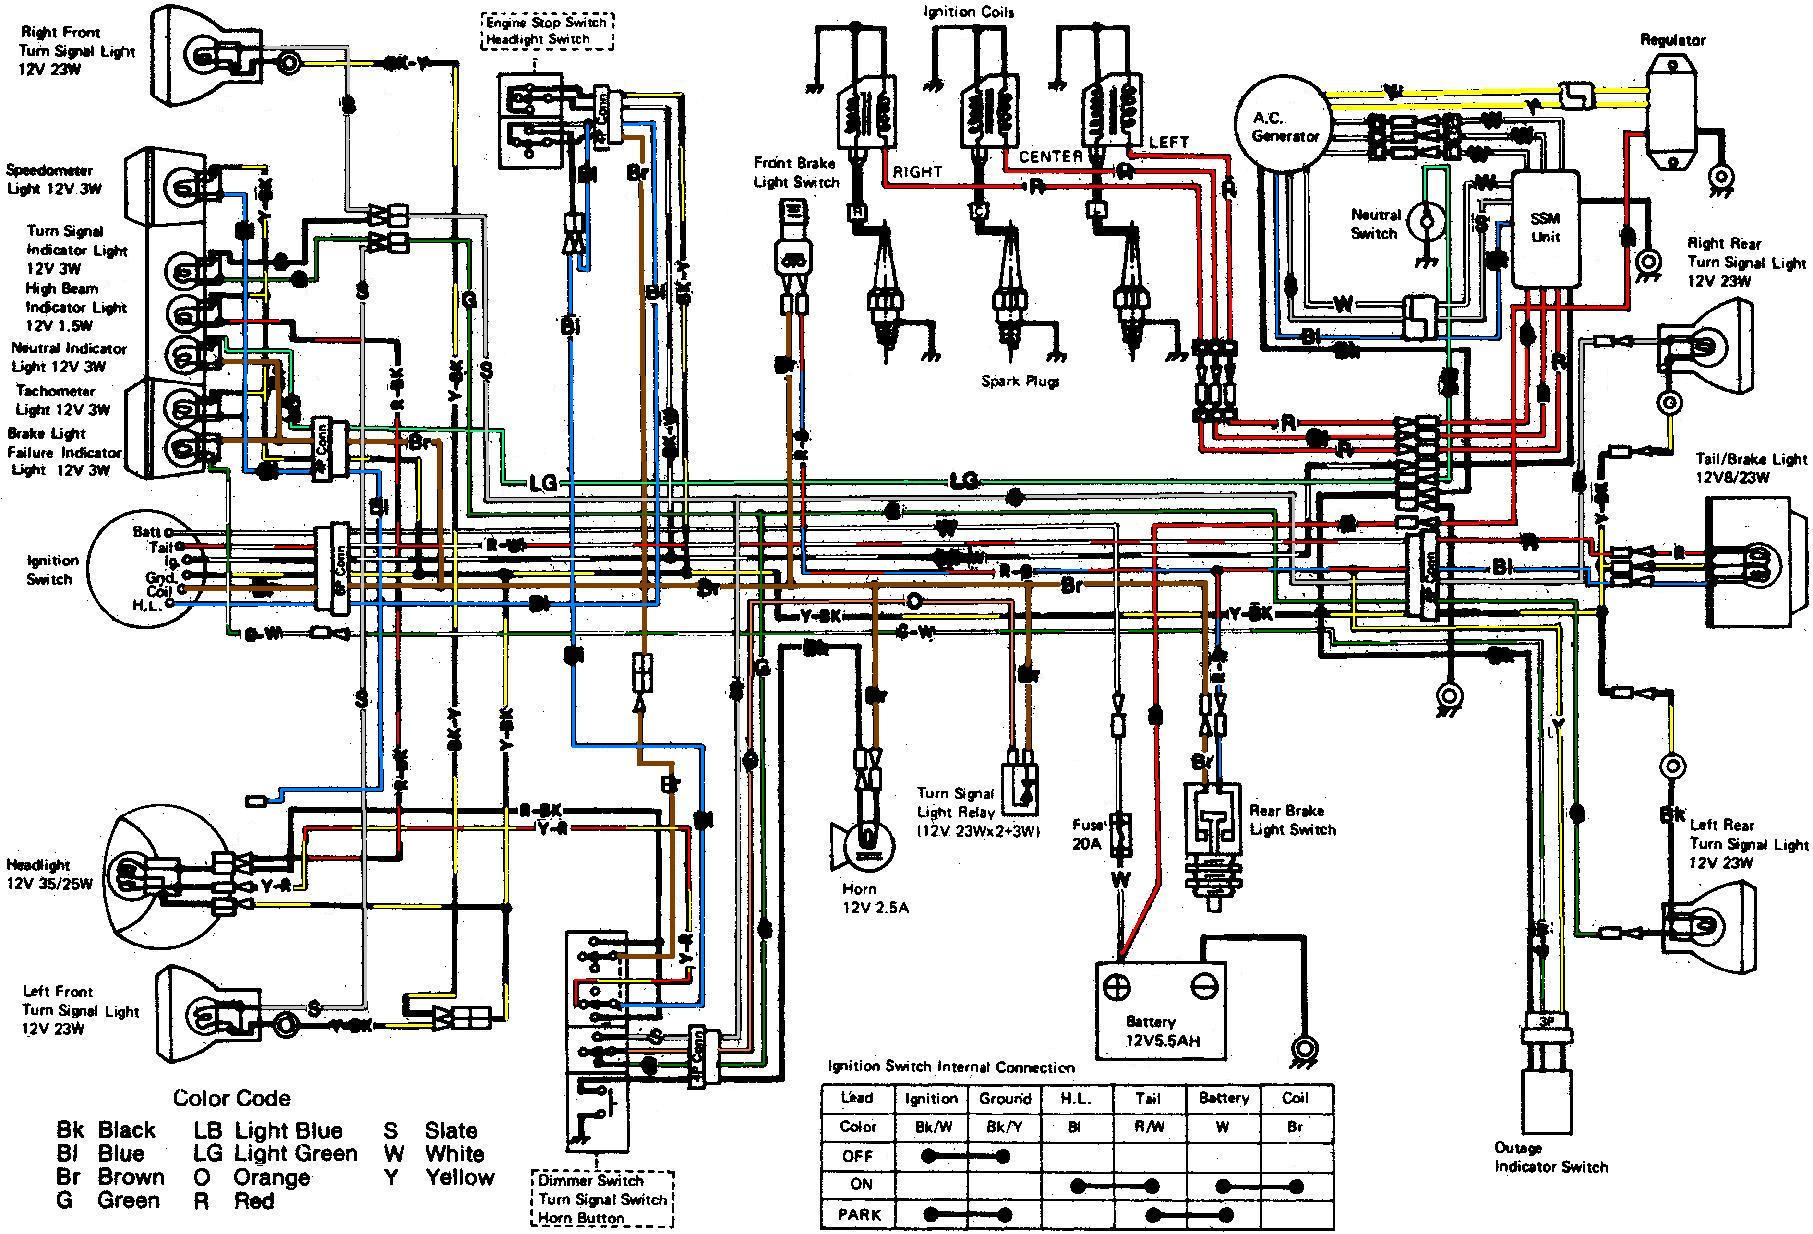 Honda 1100 Ace Wiring Diagram Page 4 And Schematics 83 Shadow 750 Nice 1983 Pictures Simple